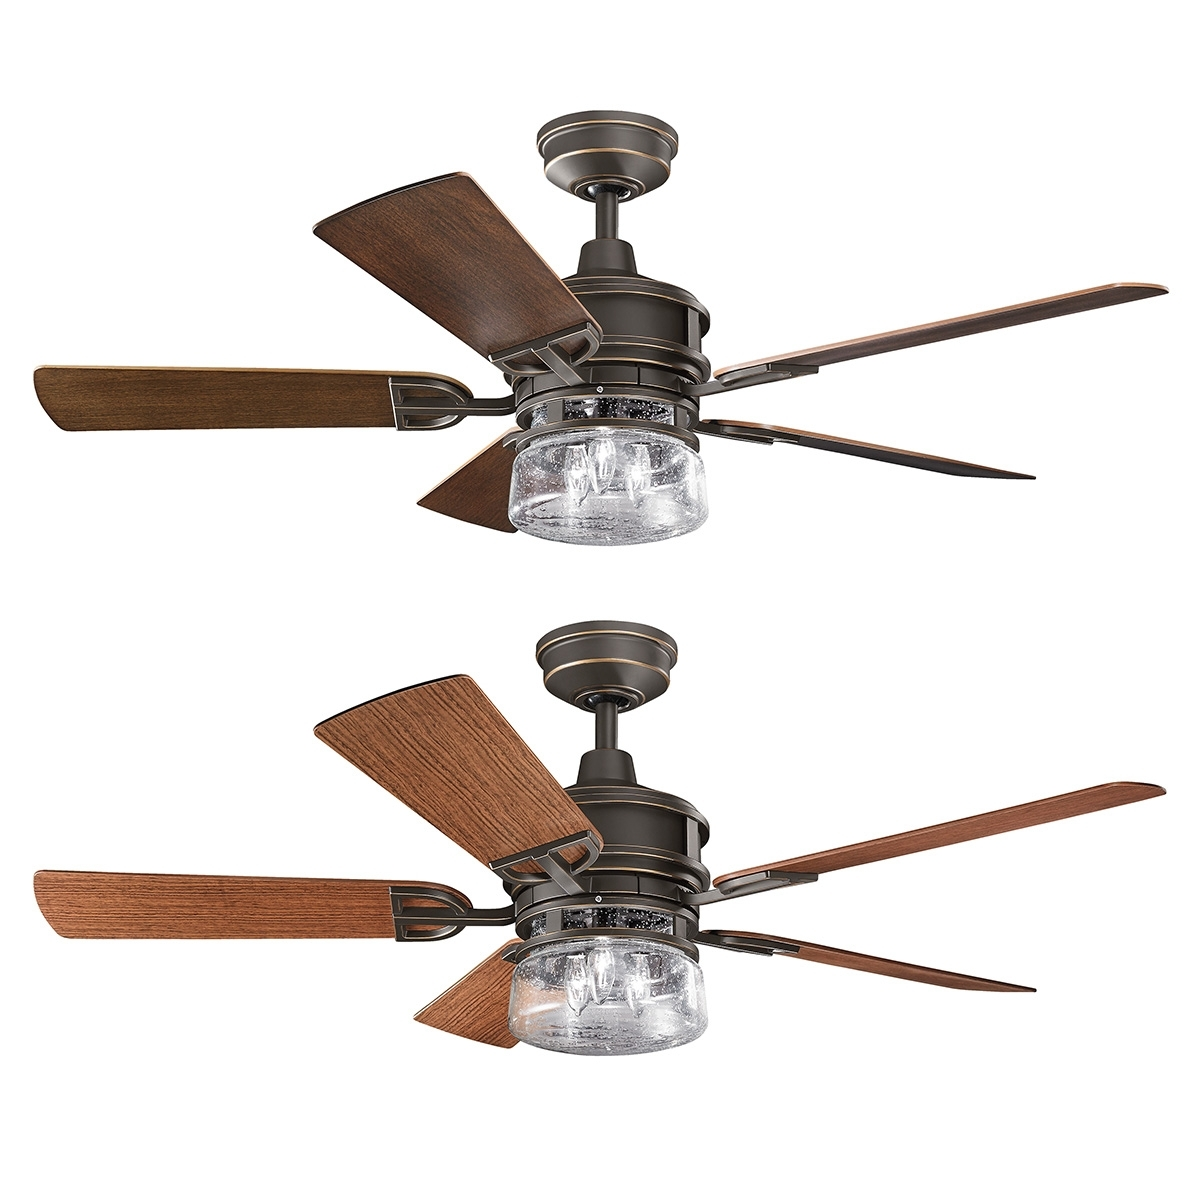 Kichler Outdoor Ceiling Lights With Well Known Outdoor Ceiling Fan With Lightkichler (View 11 of 20)